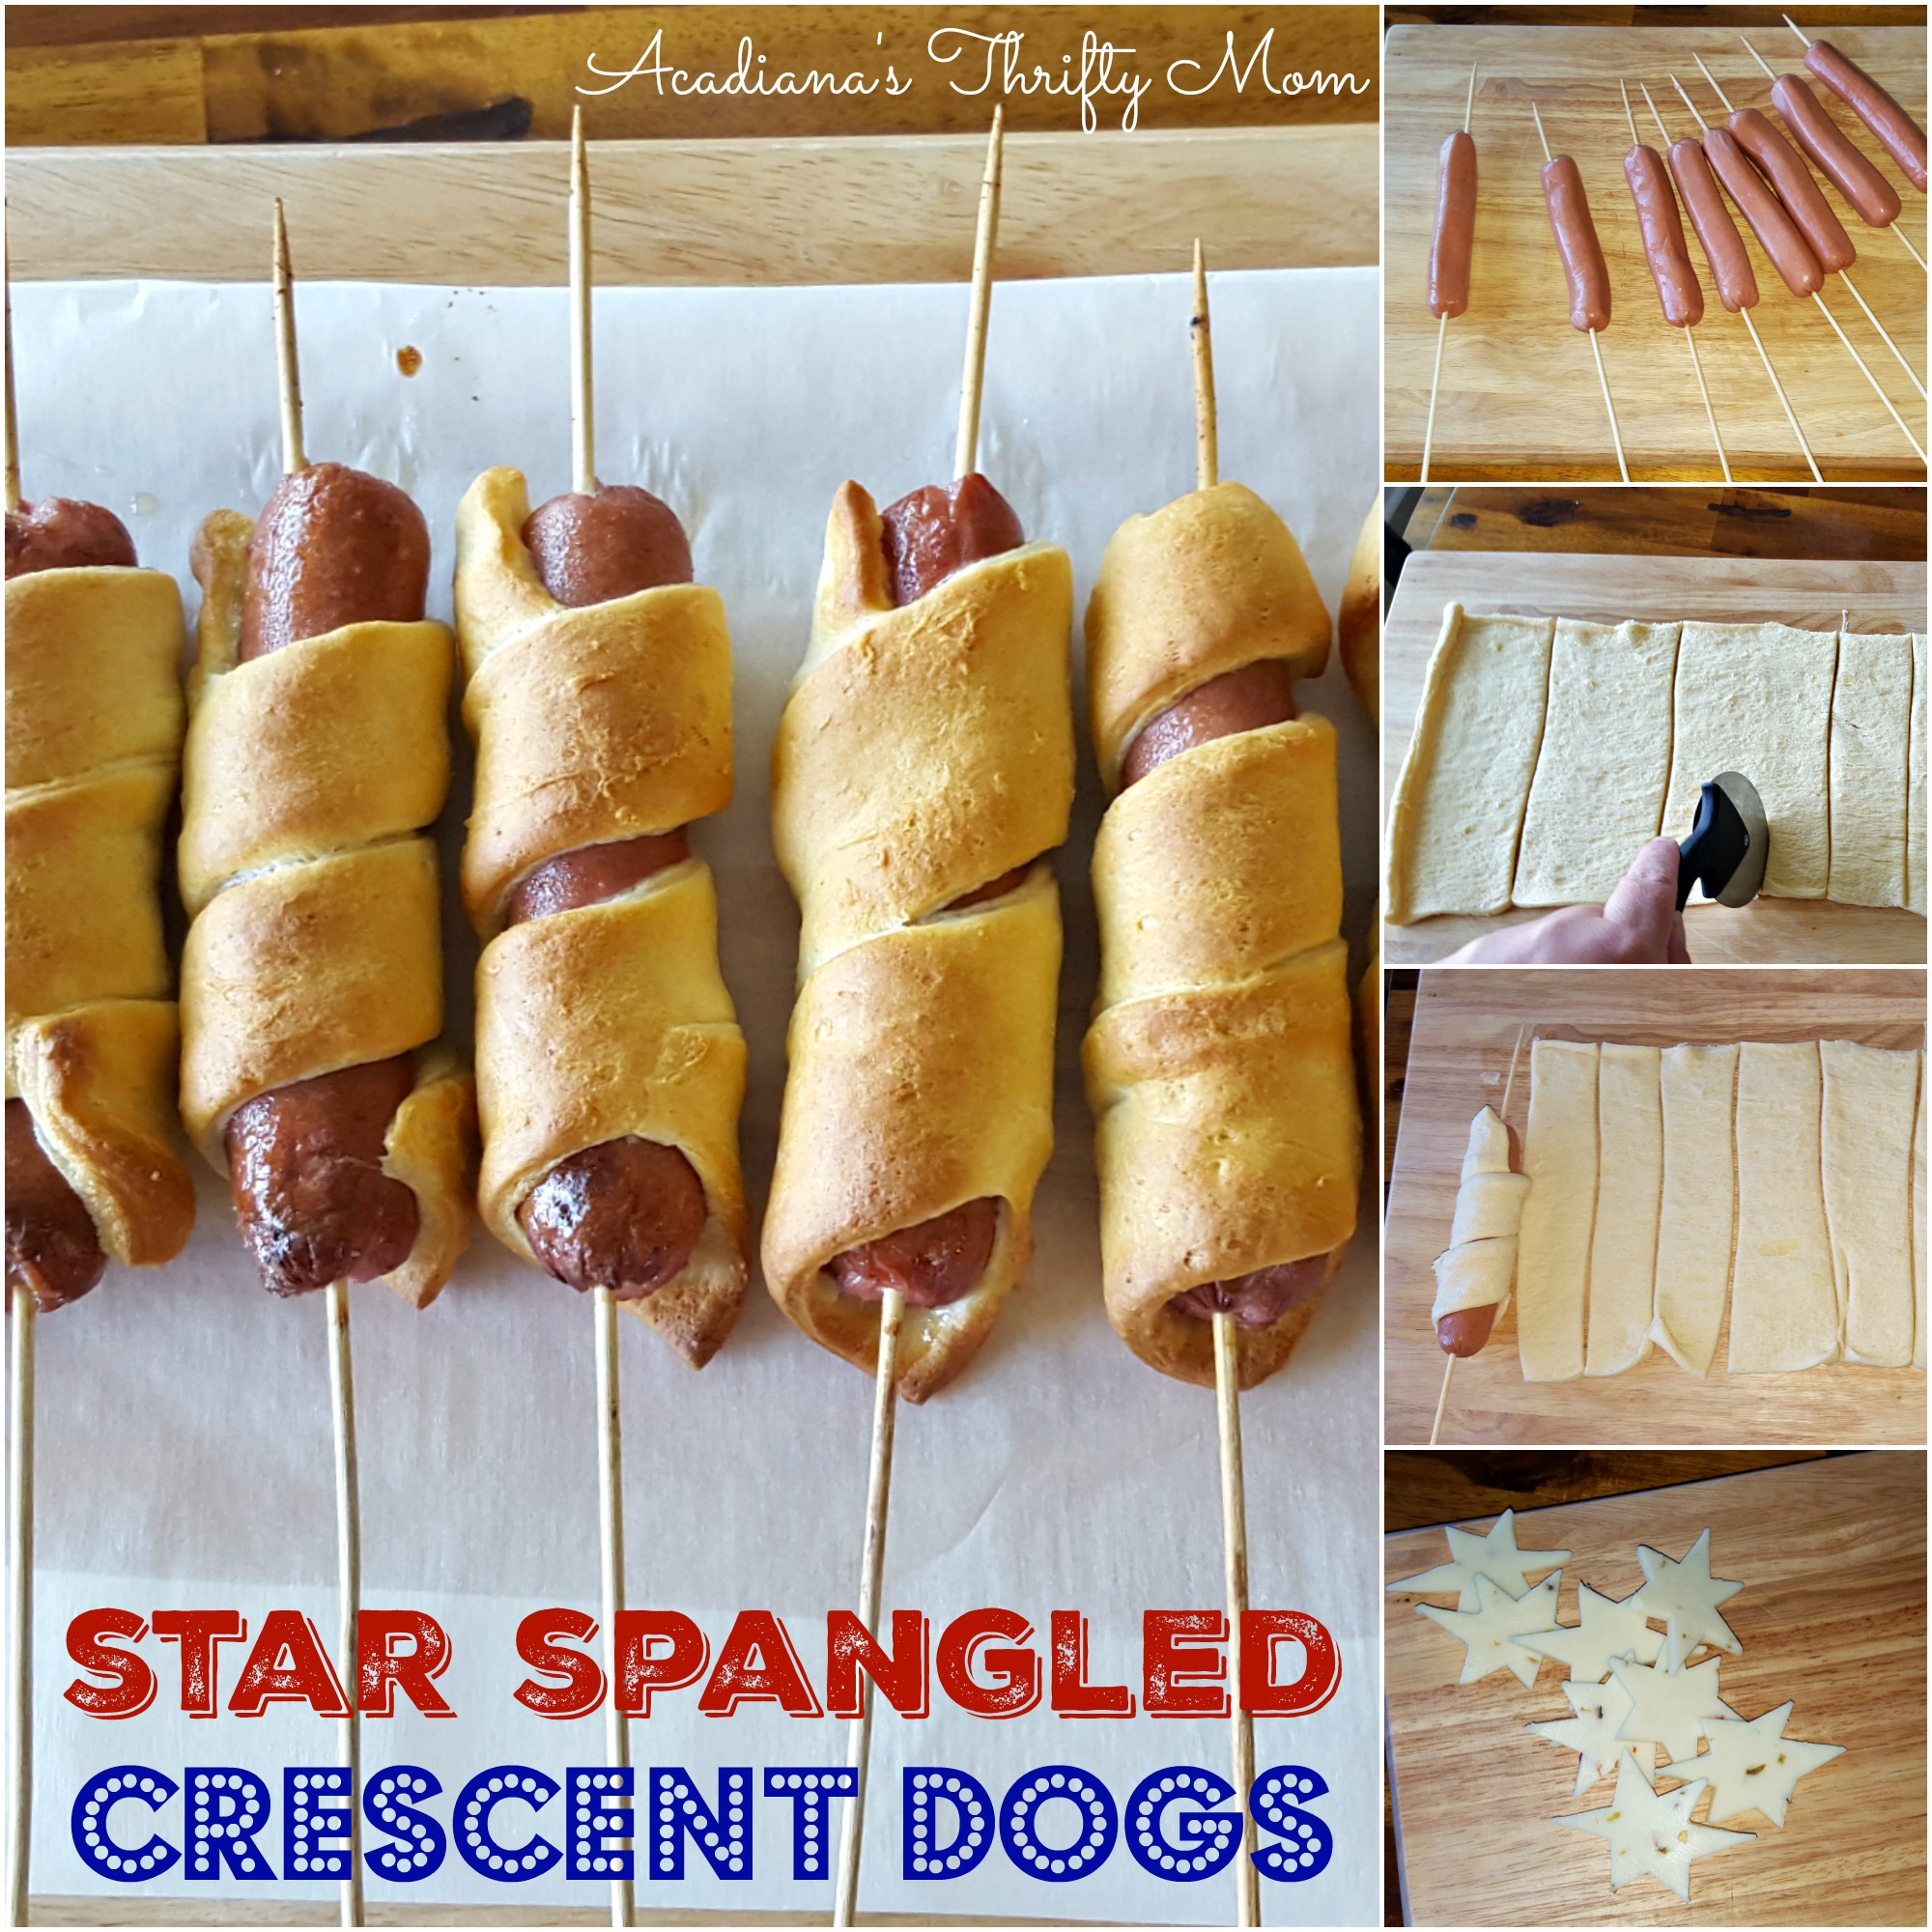 Star Spangled Crescent Dogs